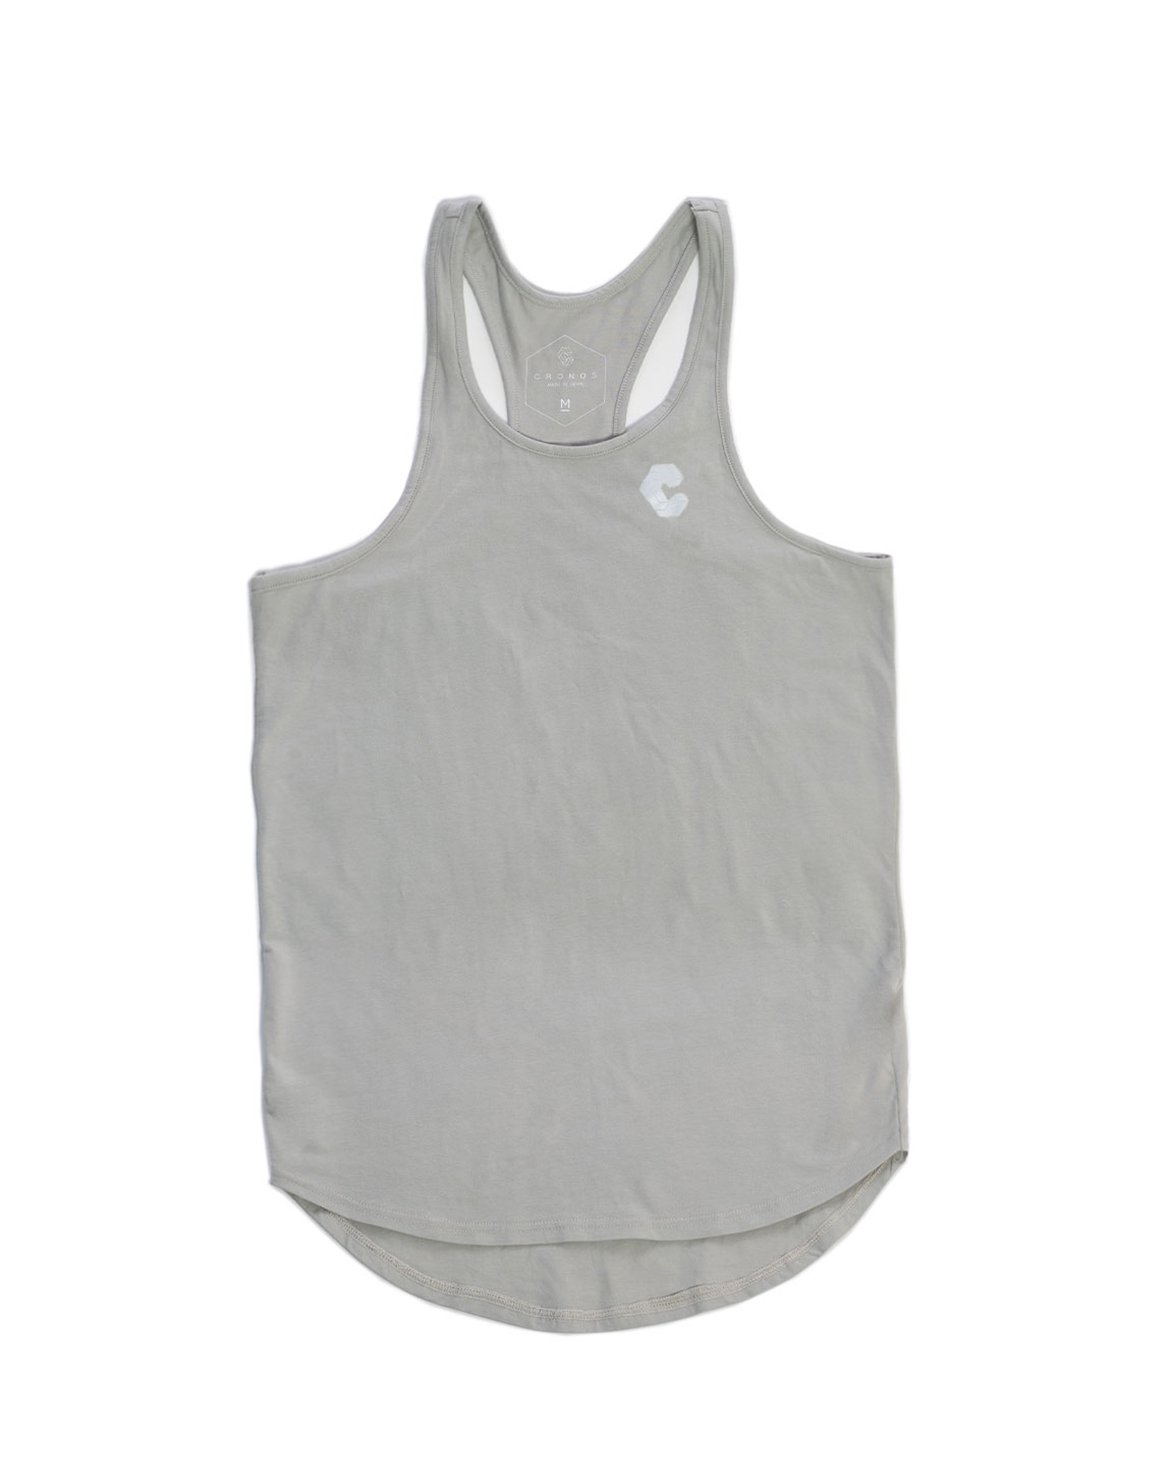 <img class='new_mark_img1' src='https://img.shop-pro.jp/img/new/icons1.gif' style='border:none;display:inline;margin:0px;padding:0px;width:auto;' />CRONOS BACK LOG TANK TOP GRAY